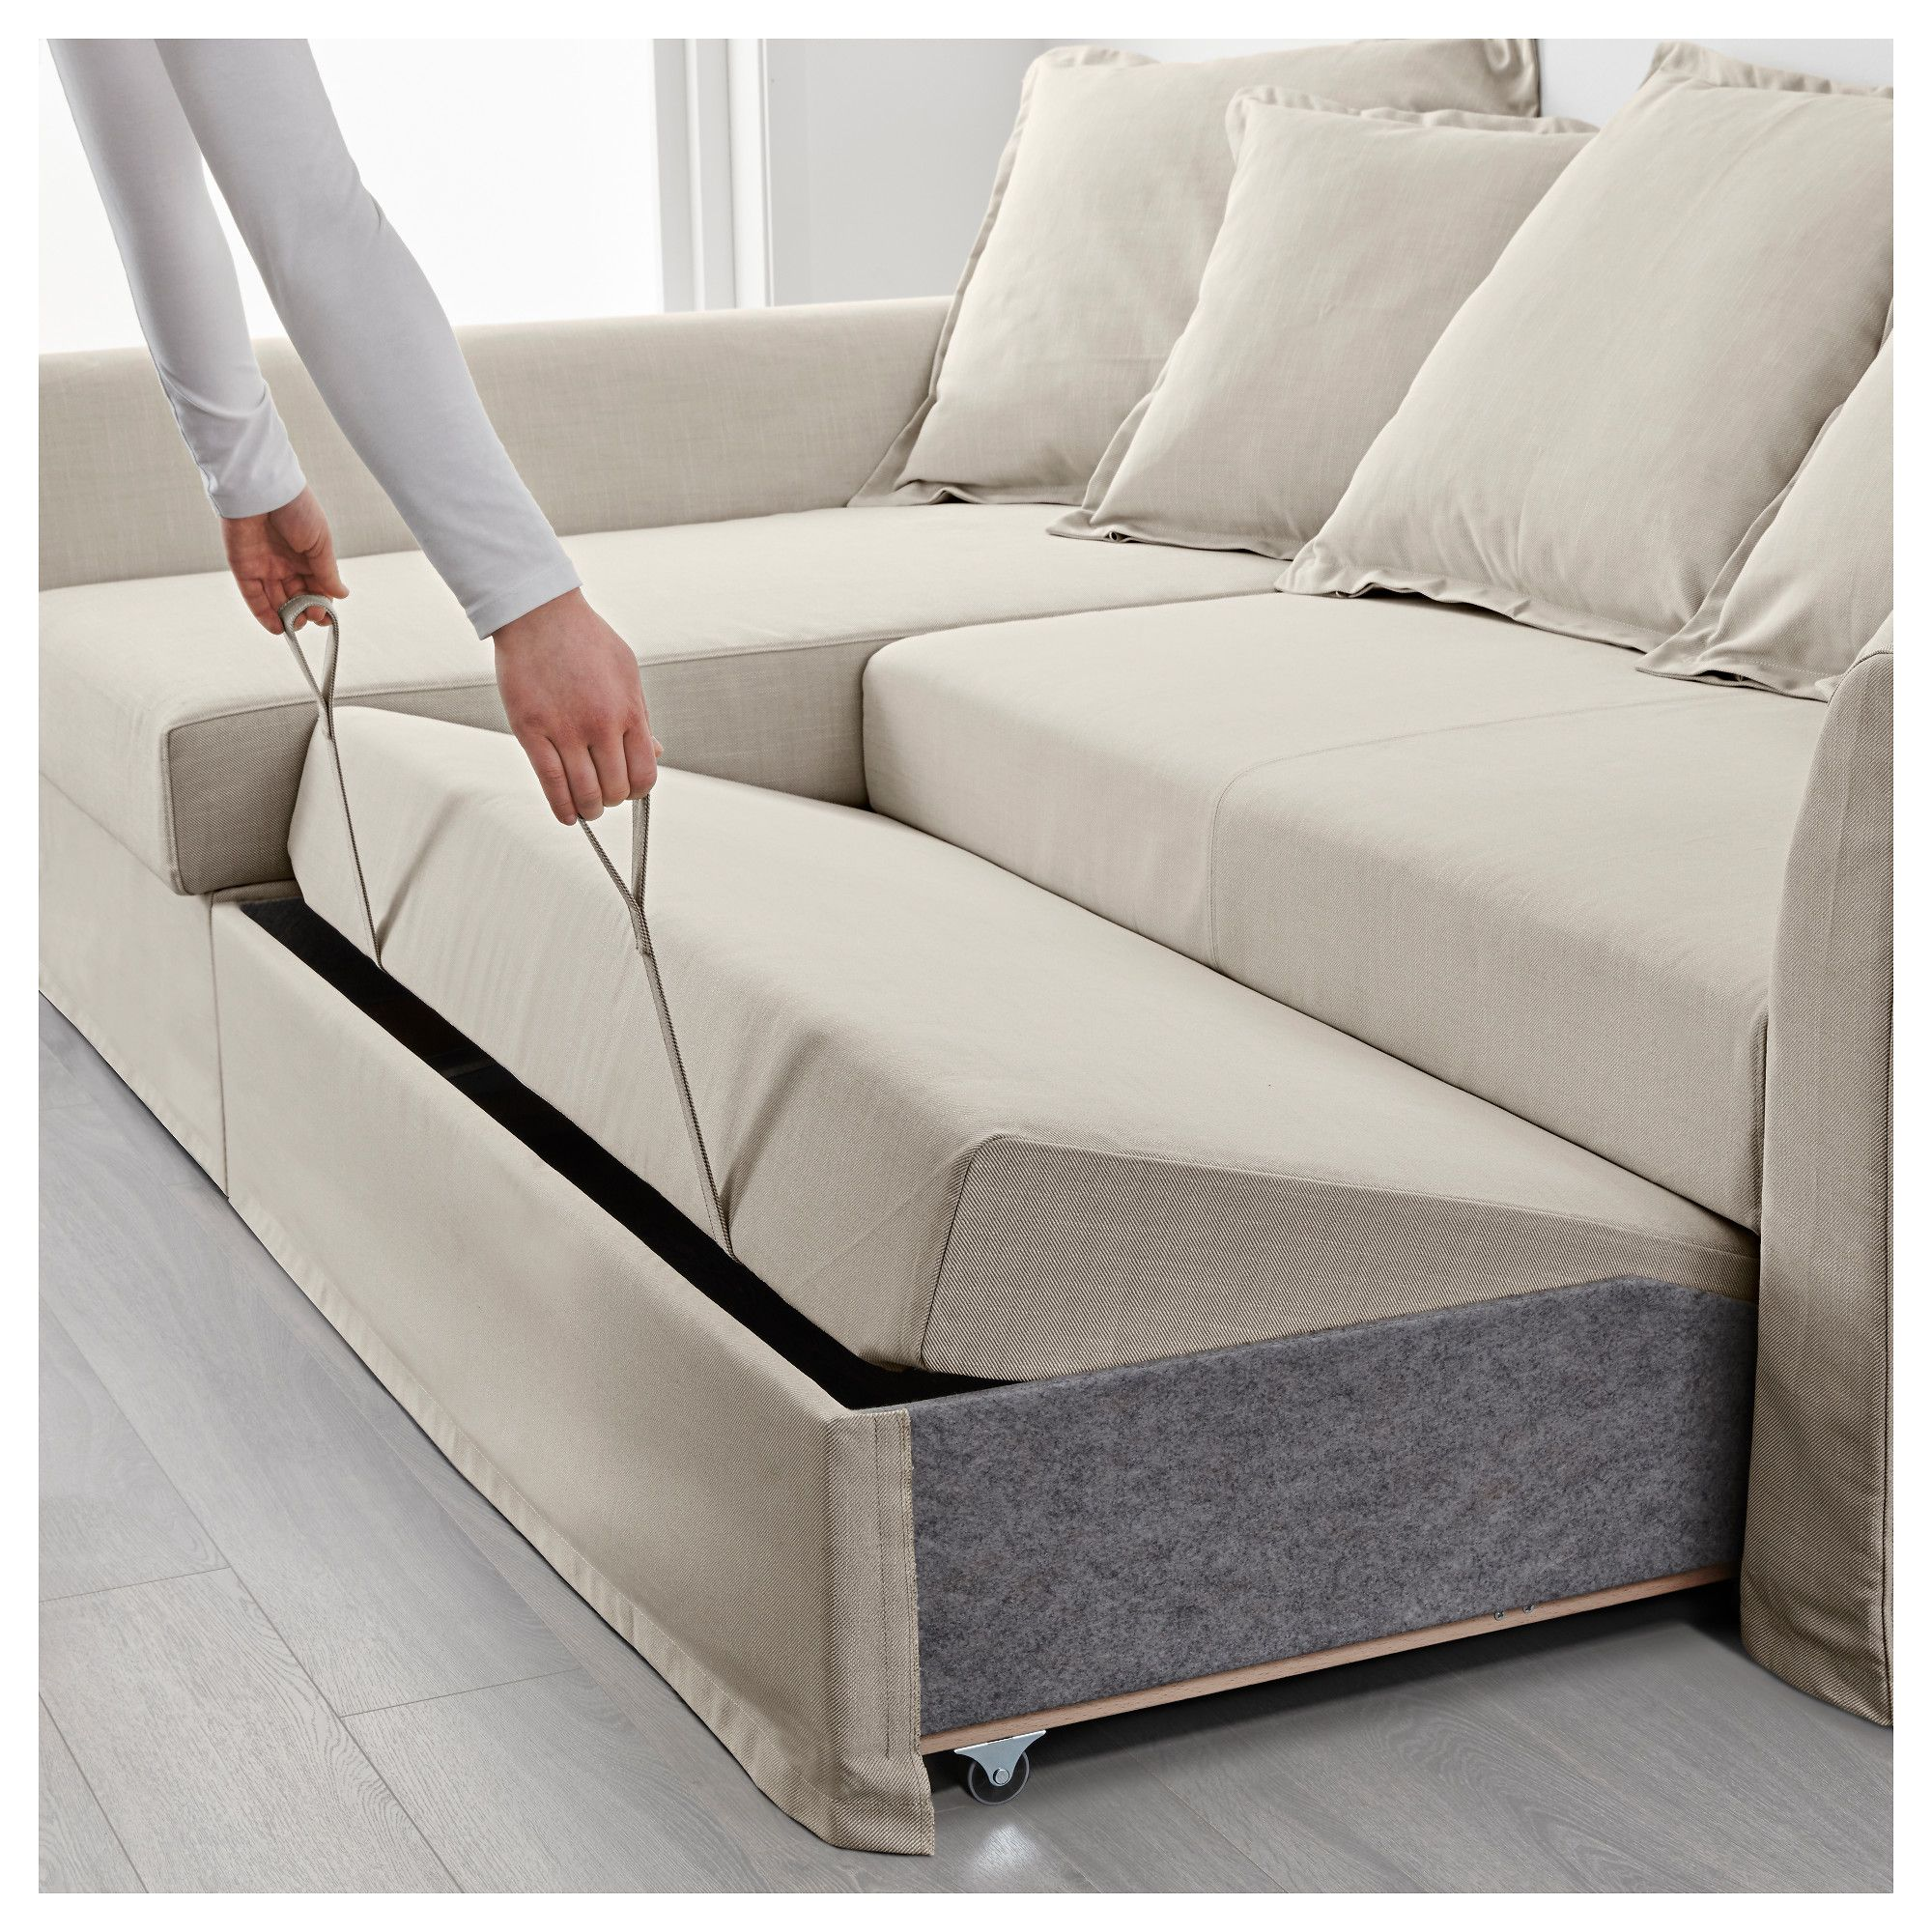 Furniture And Home Furnishings Corner Sofa Bed Sofa Bed With